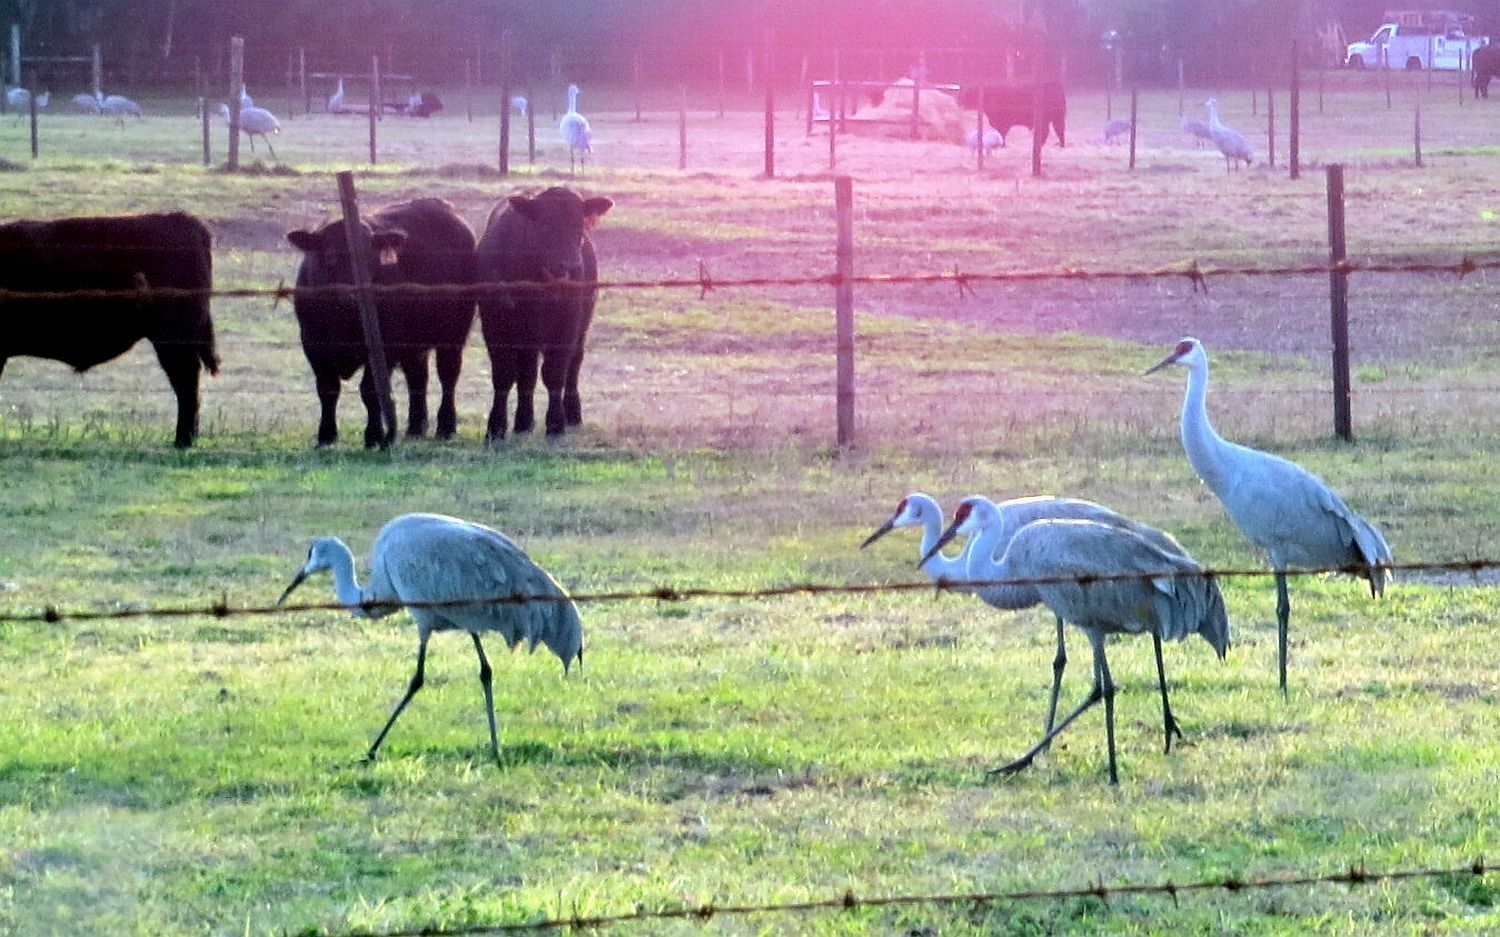 cranes and cows with some nice residual early morning light